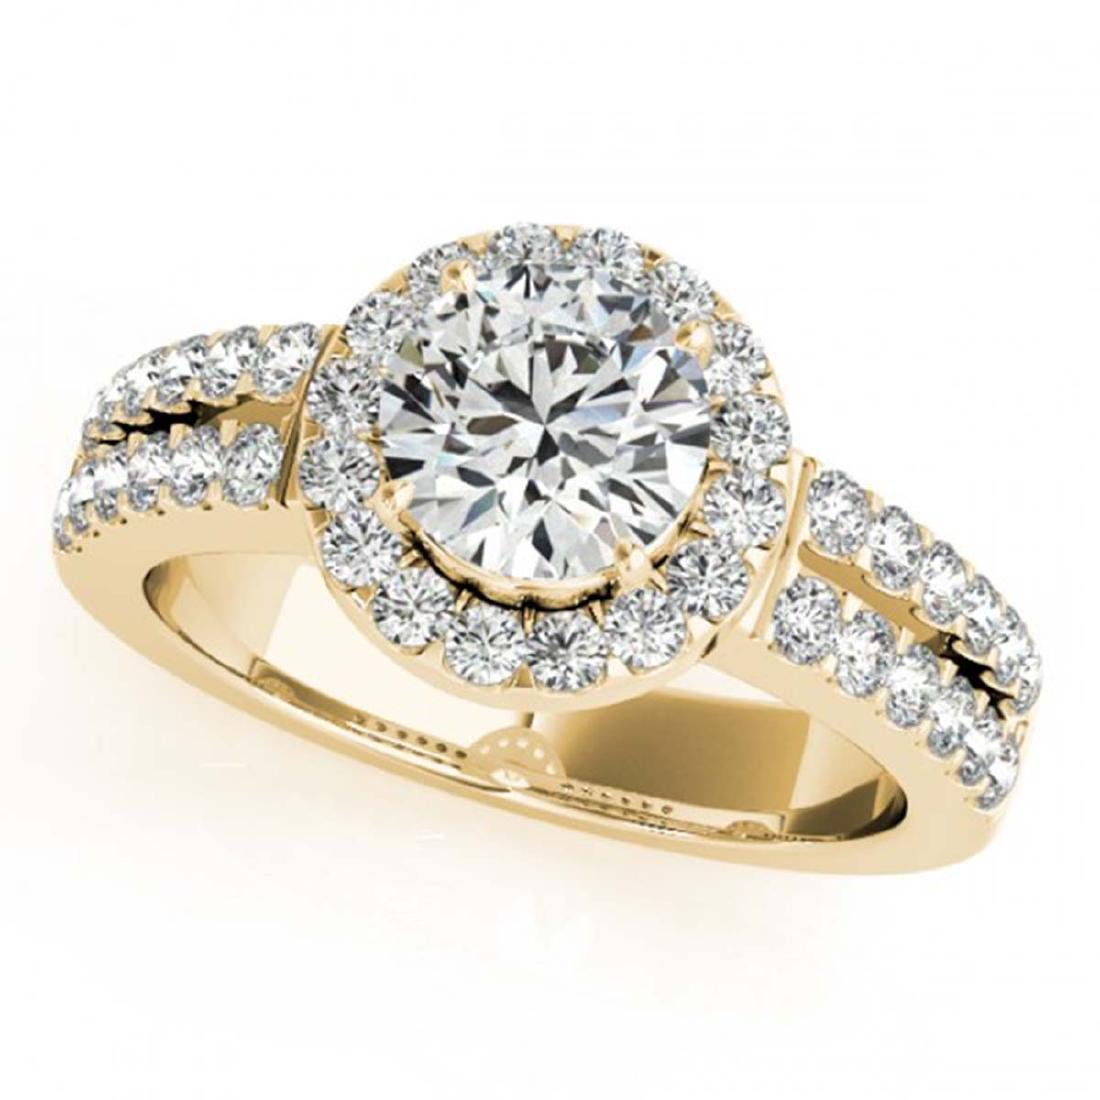 1.25 ctw VS/SI Diamond Solitaire Halo Ring 14K Yellow